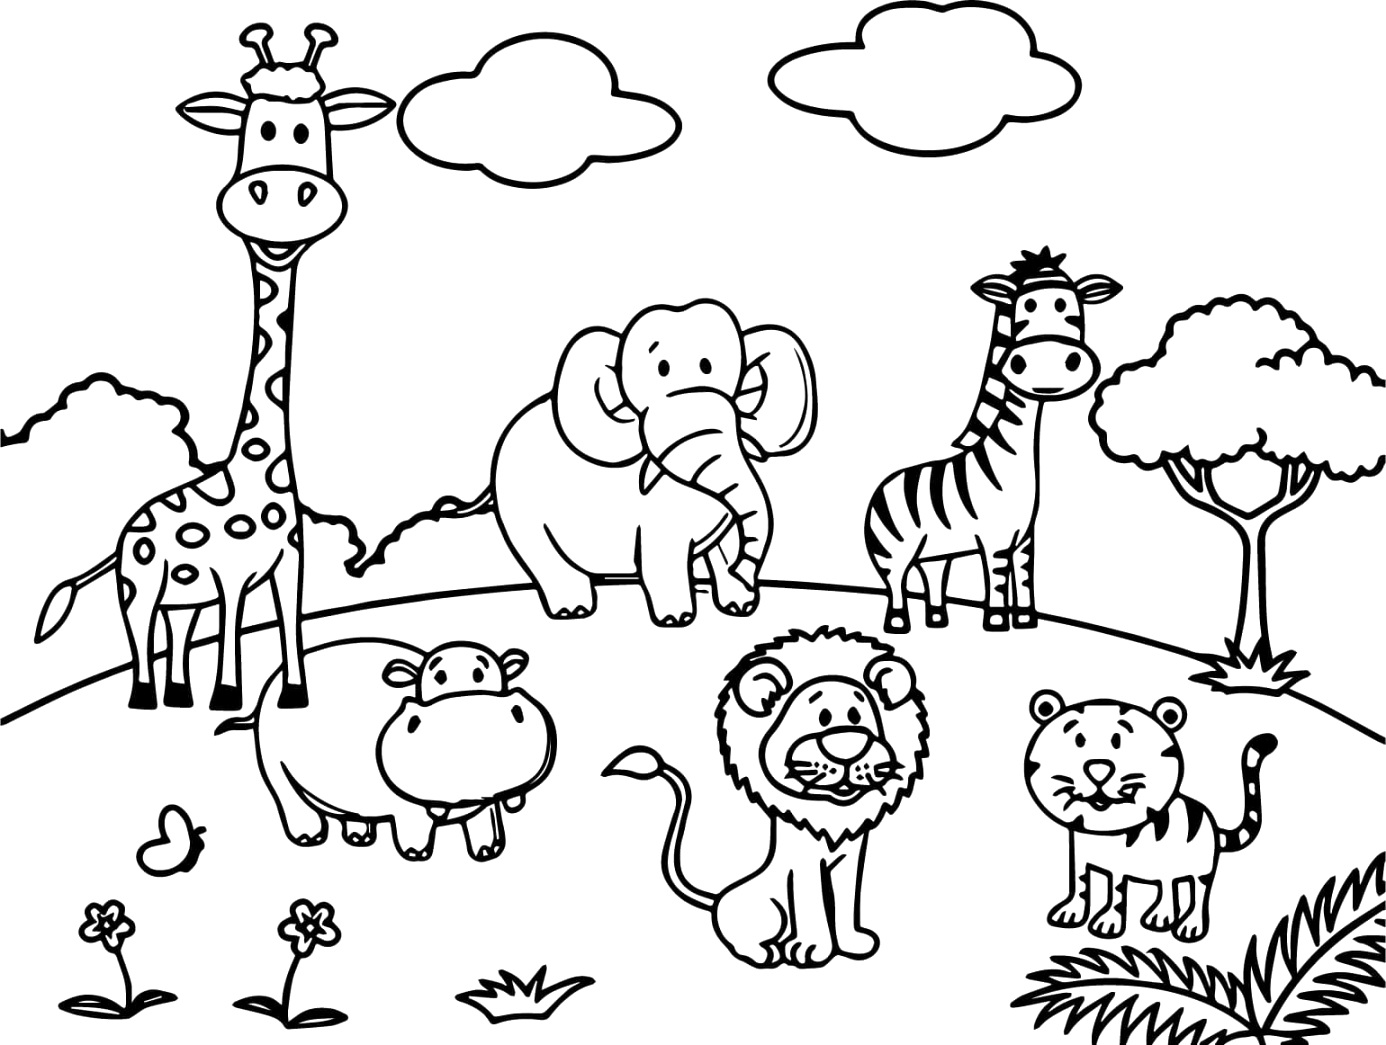 free downloadable animal coloring pages cool coloring sheet